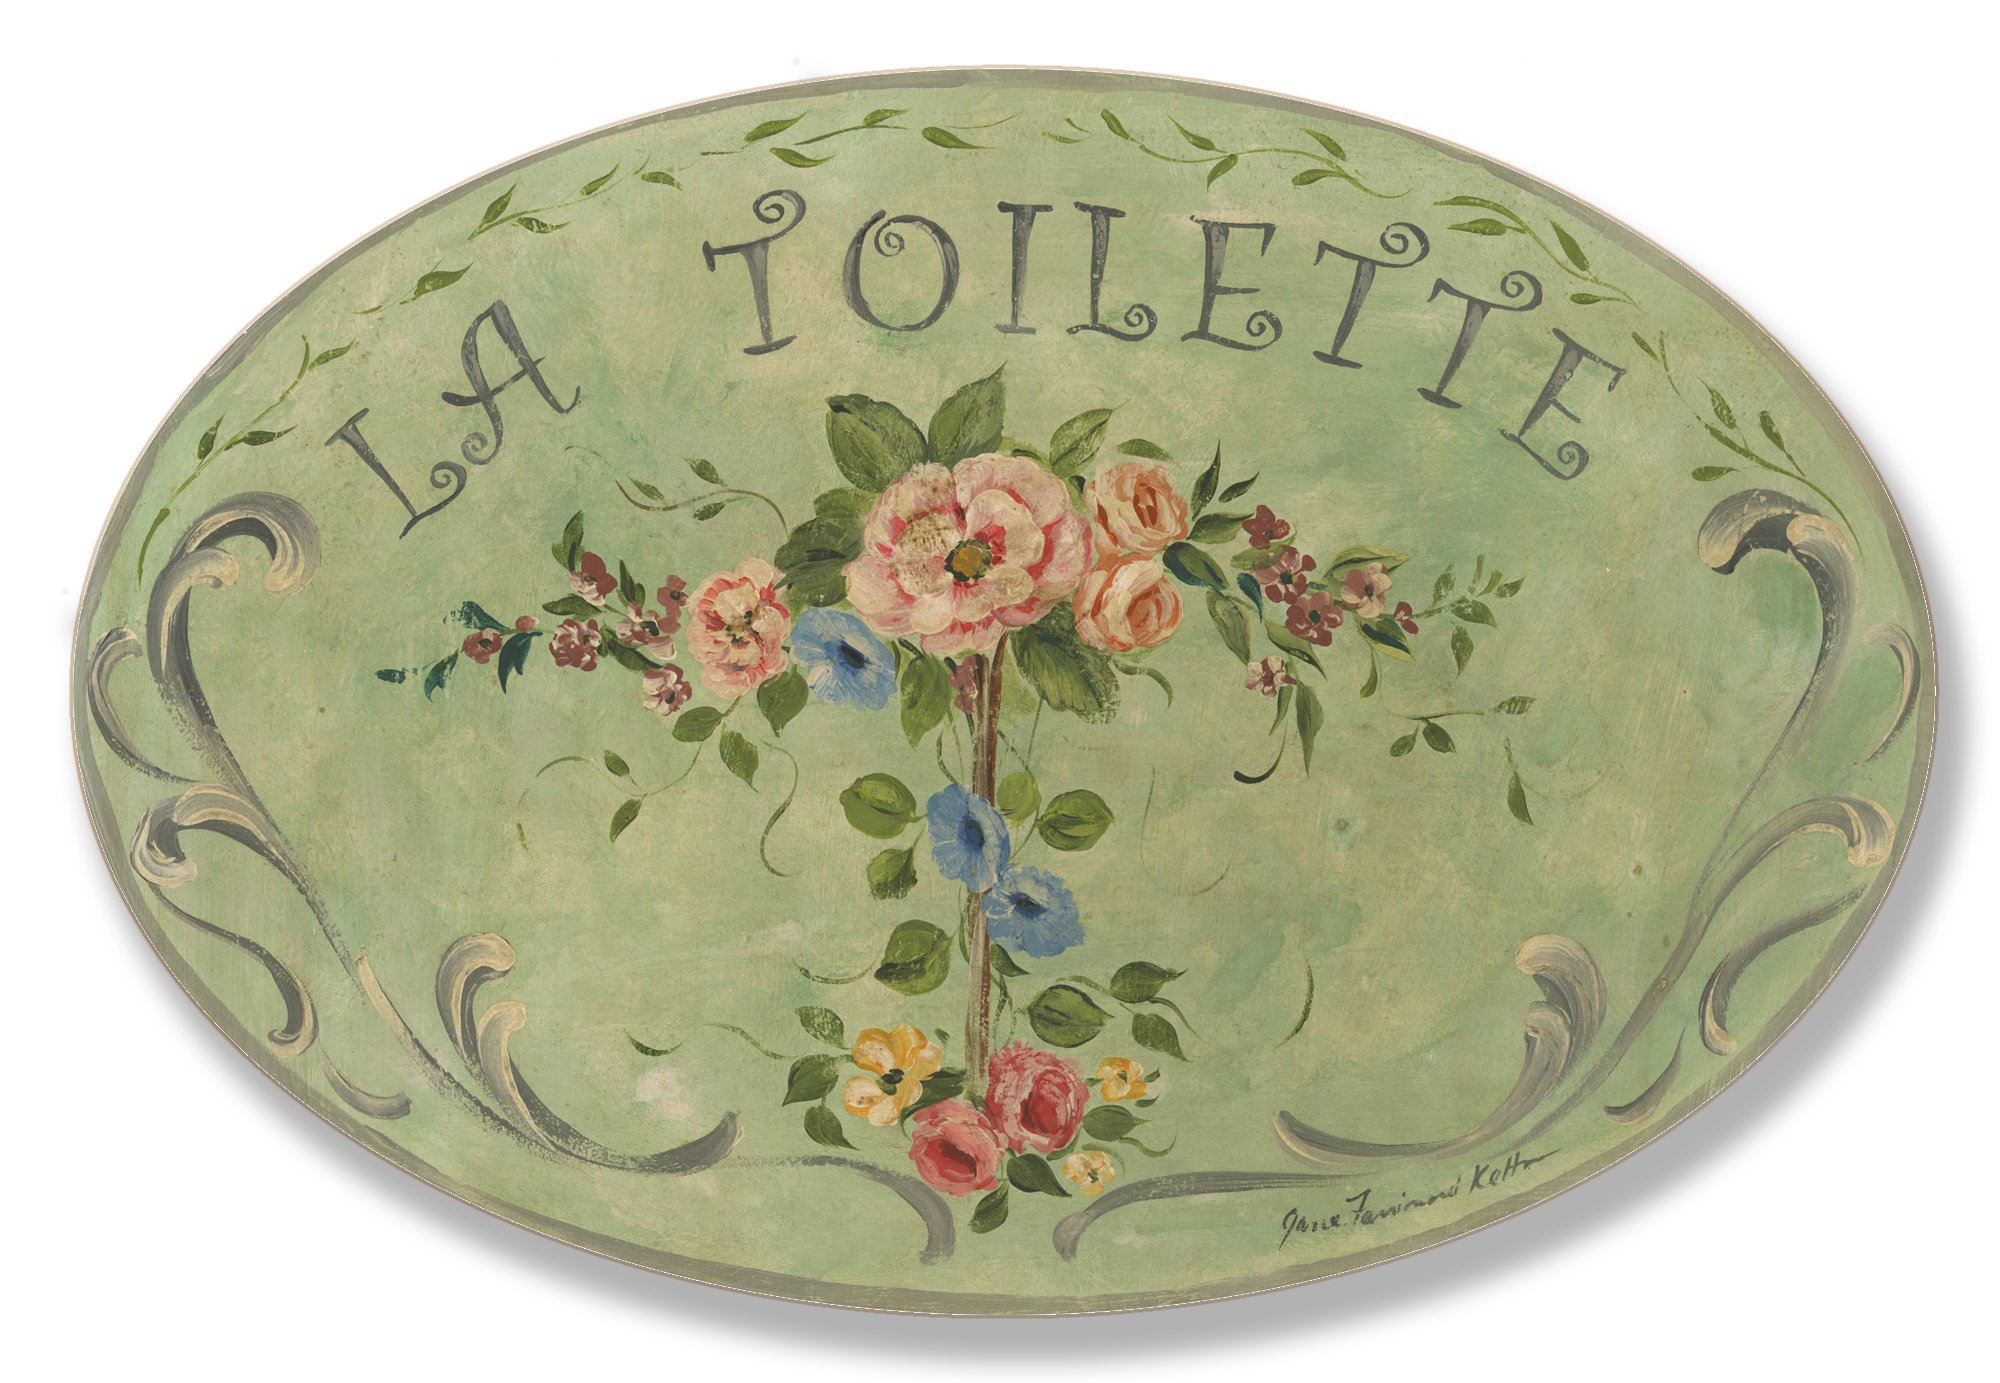 Stupell Home Décor La Toilette Green Floral Oval Bathroom Wall Plaque, 10 x 0.5 x 15, Proudly Made in USA